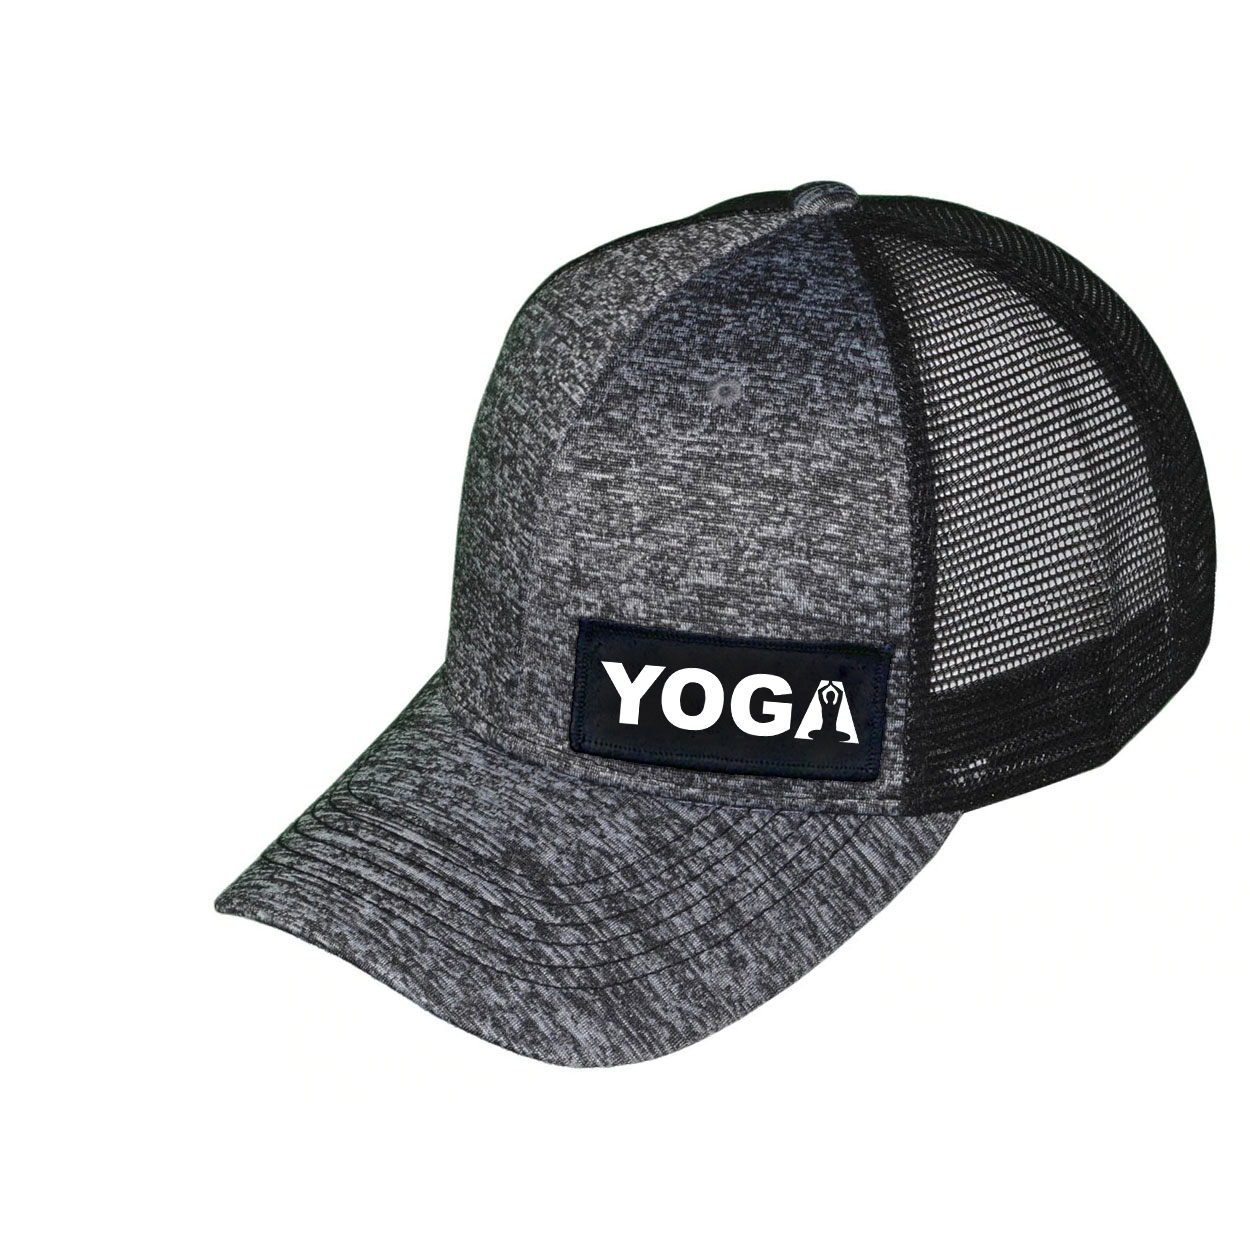 Yoga Meditation Logo Night Out Woven Patch Melange Snapback Trucker Hat Gray/Black (White Logo)